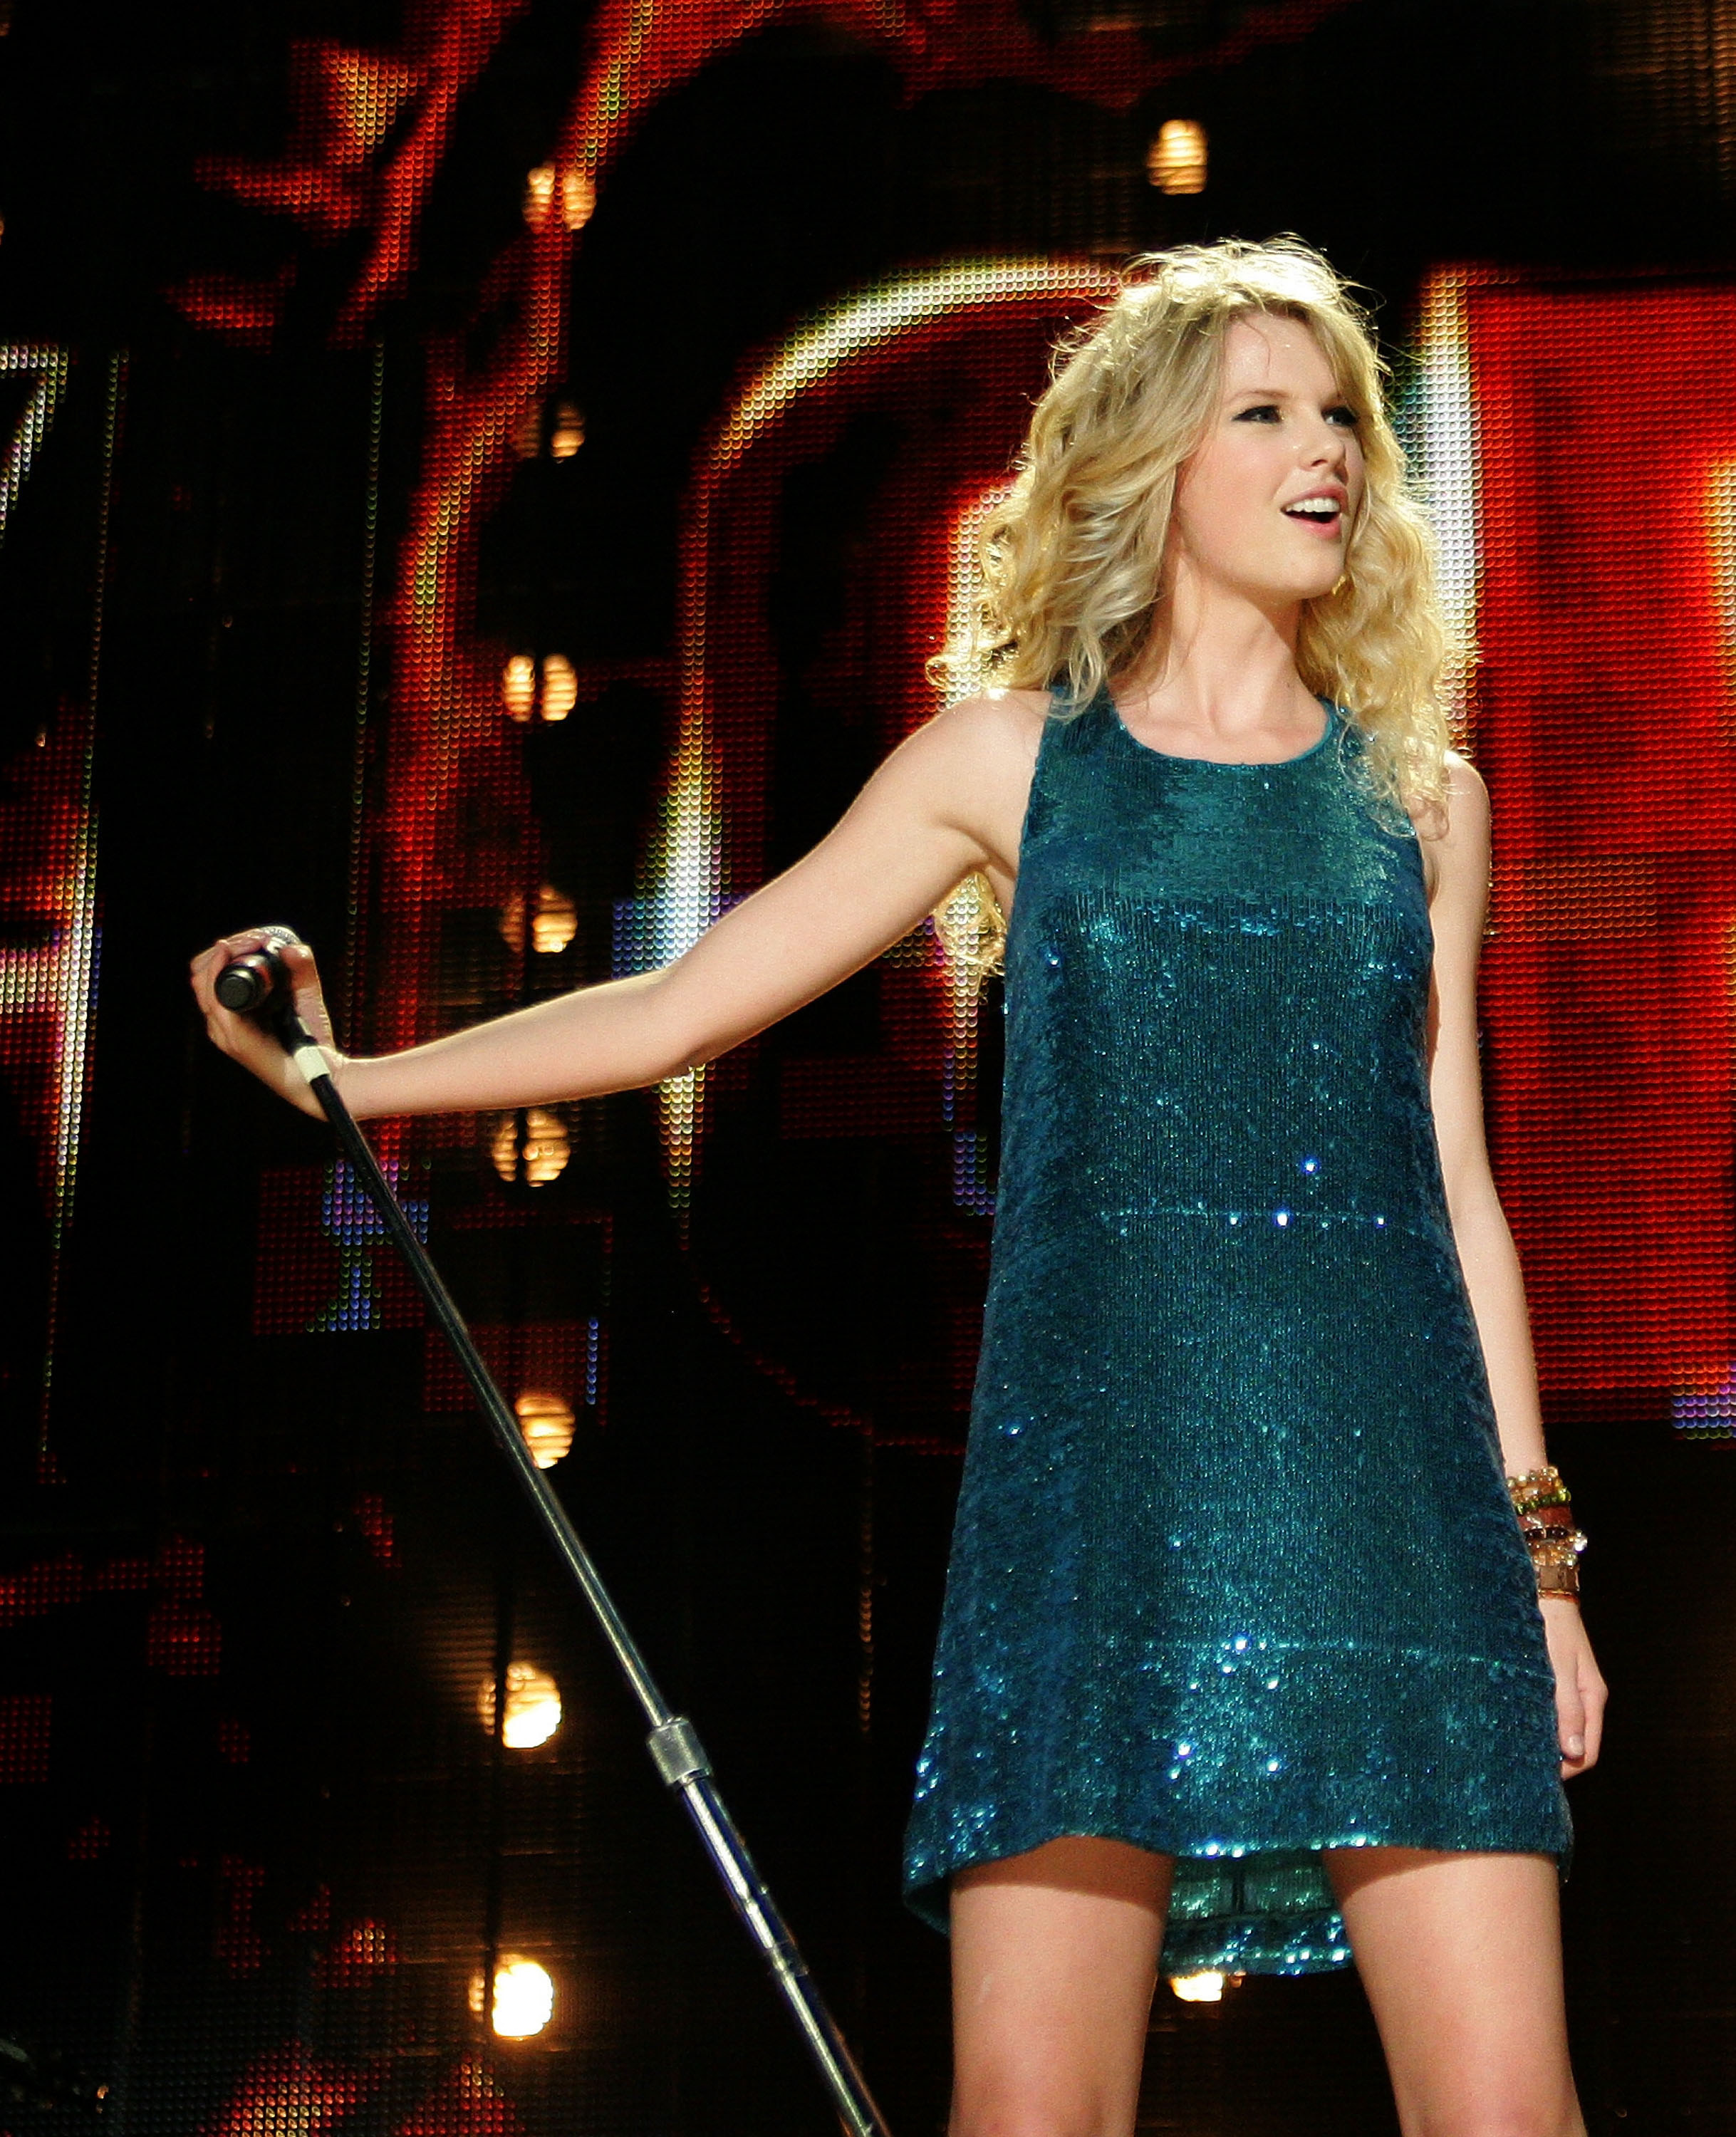 Taylor Swift performing in a sparkly blue dress